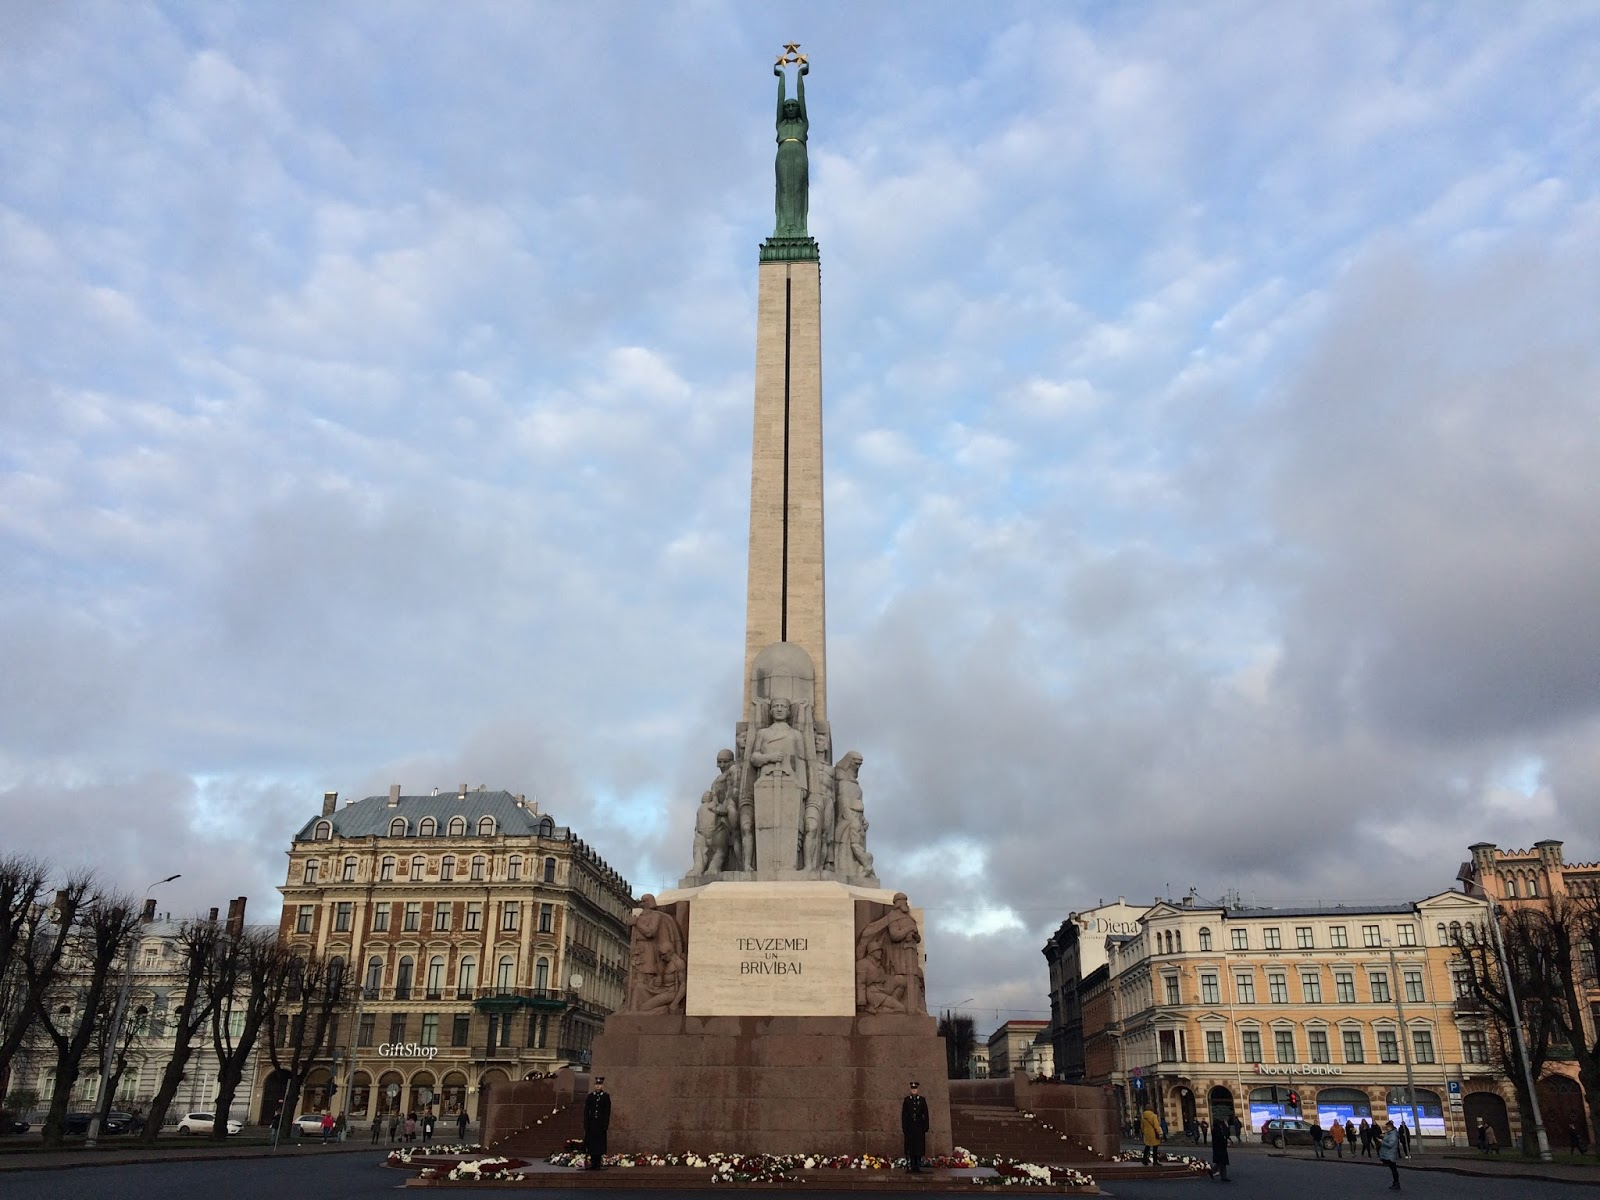 Image of Freedom Monument in Riga